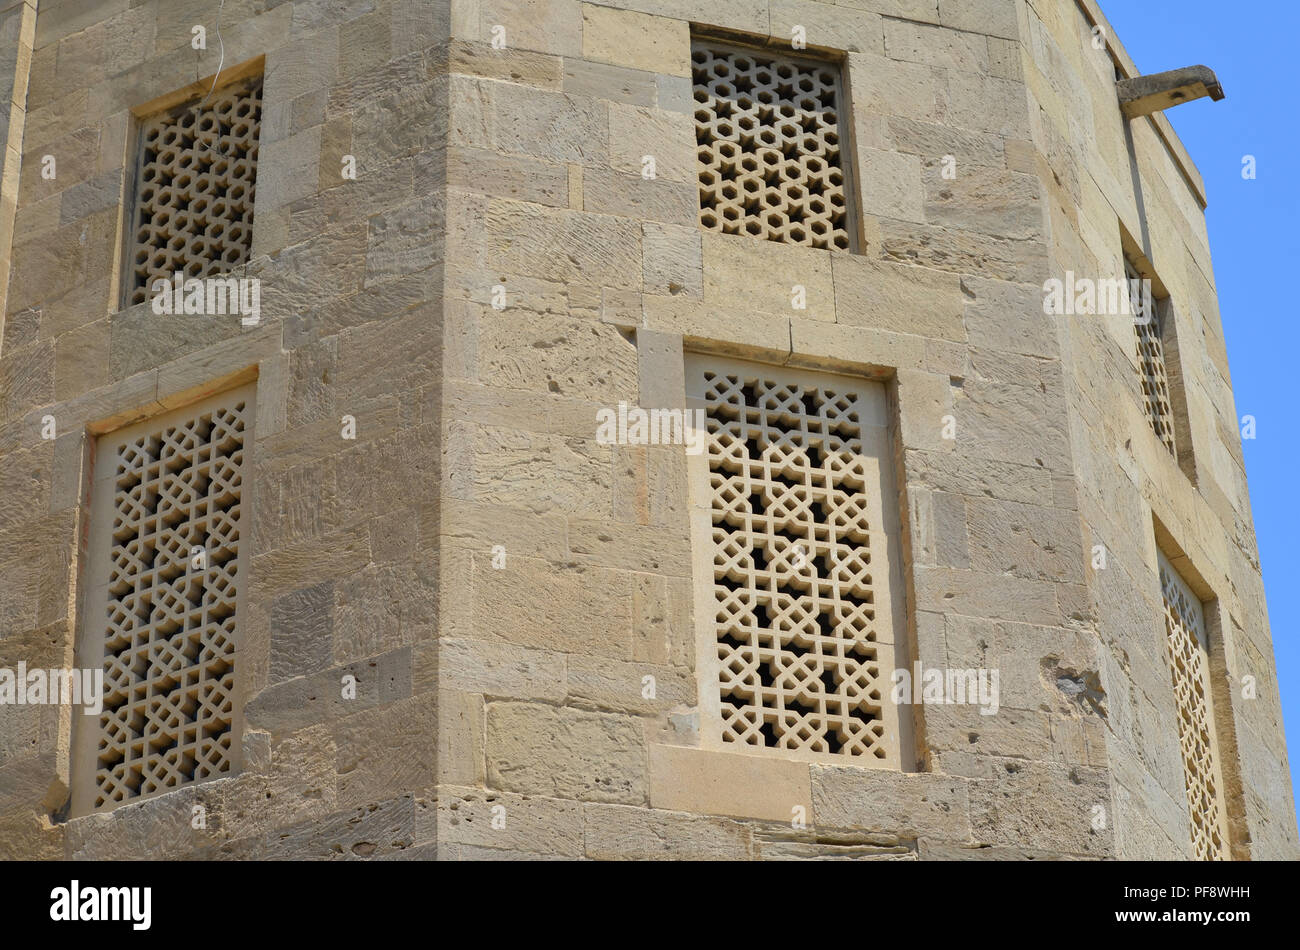 Palace of the Shirvanshahs in the old town of Baku, capital city of Azerbaijan - Stock Image